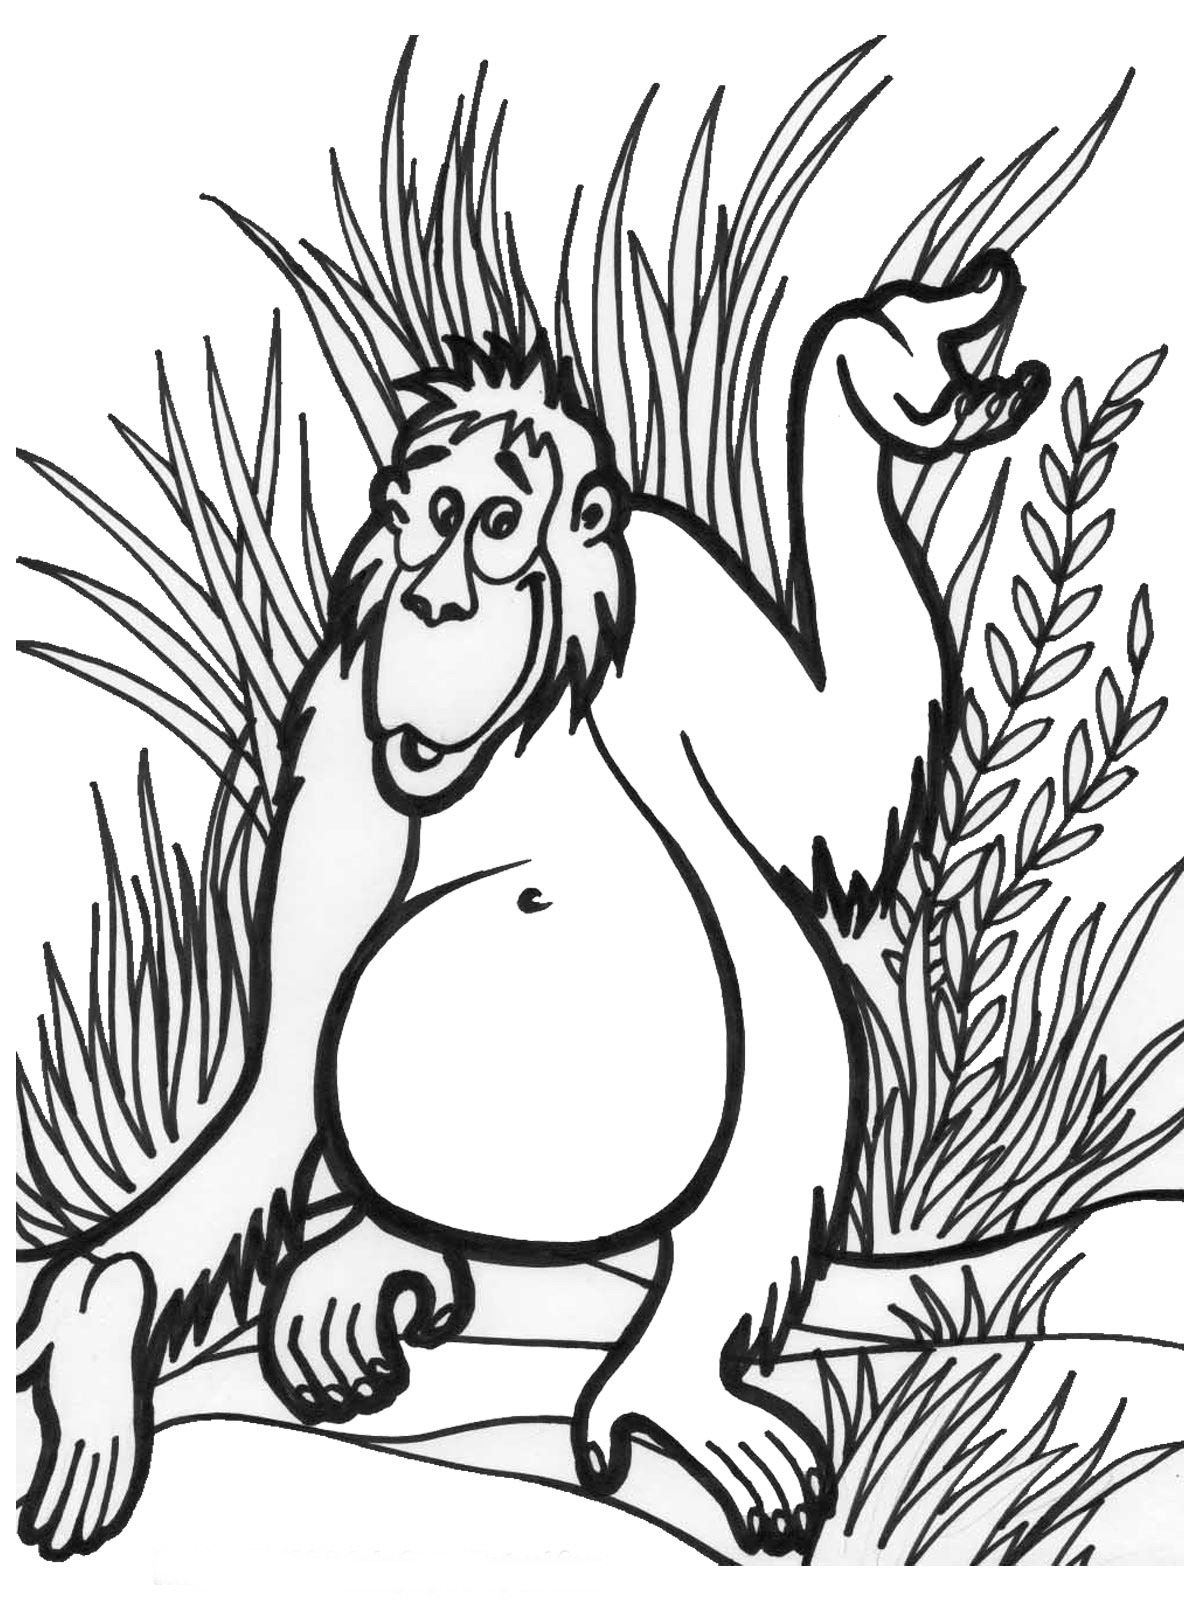 Jungle book coloring pages free -  Jungle Coloring Pages 7 Download